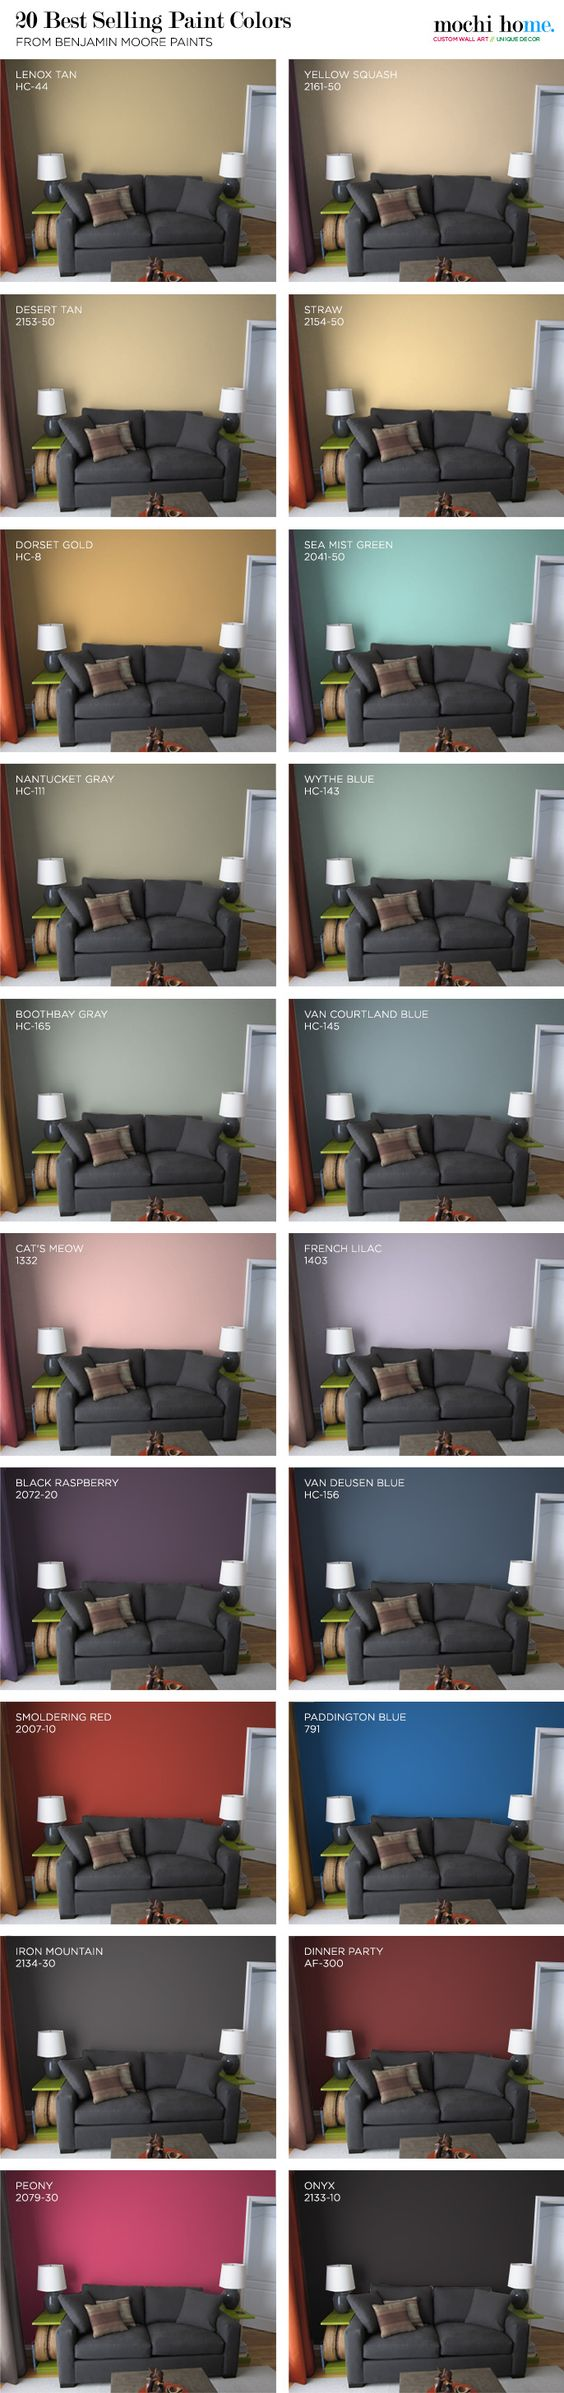 20 best selling paint colors from benjamin moore from for Best colors for selling a house